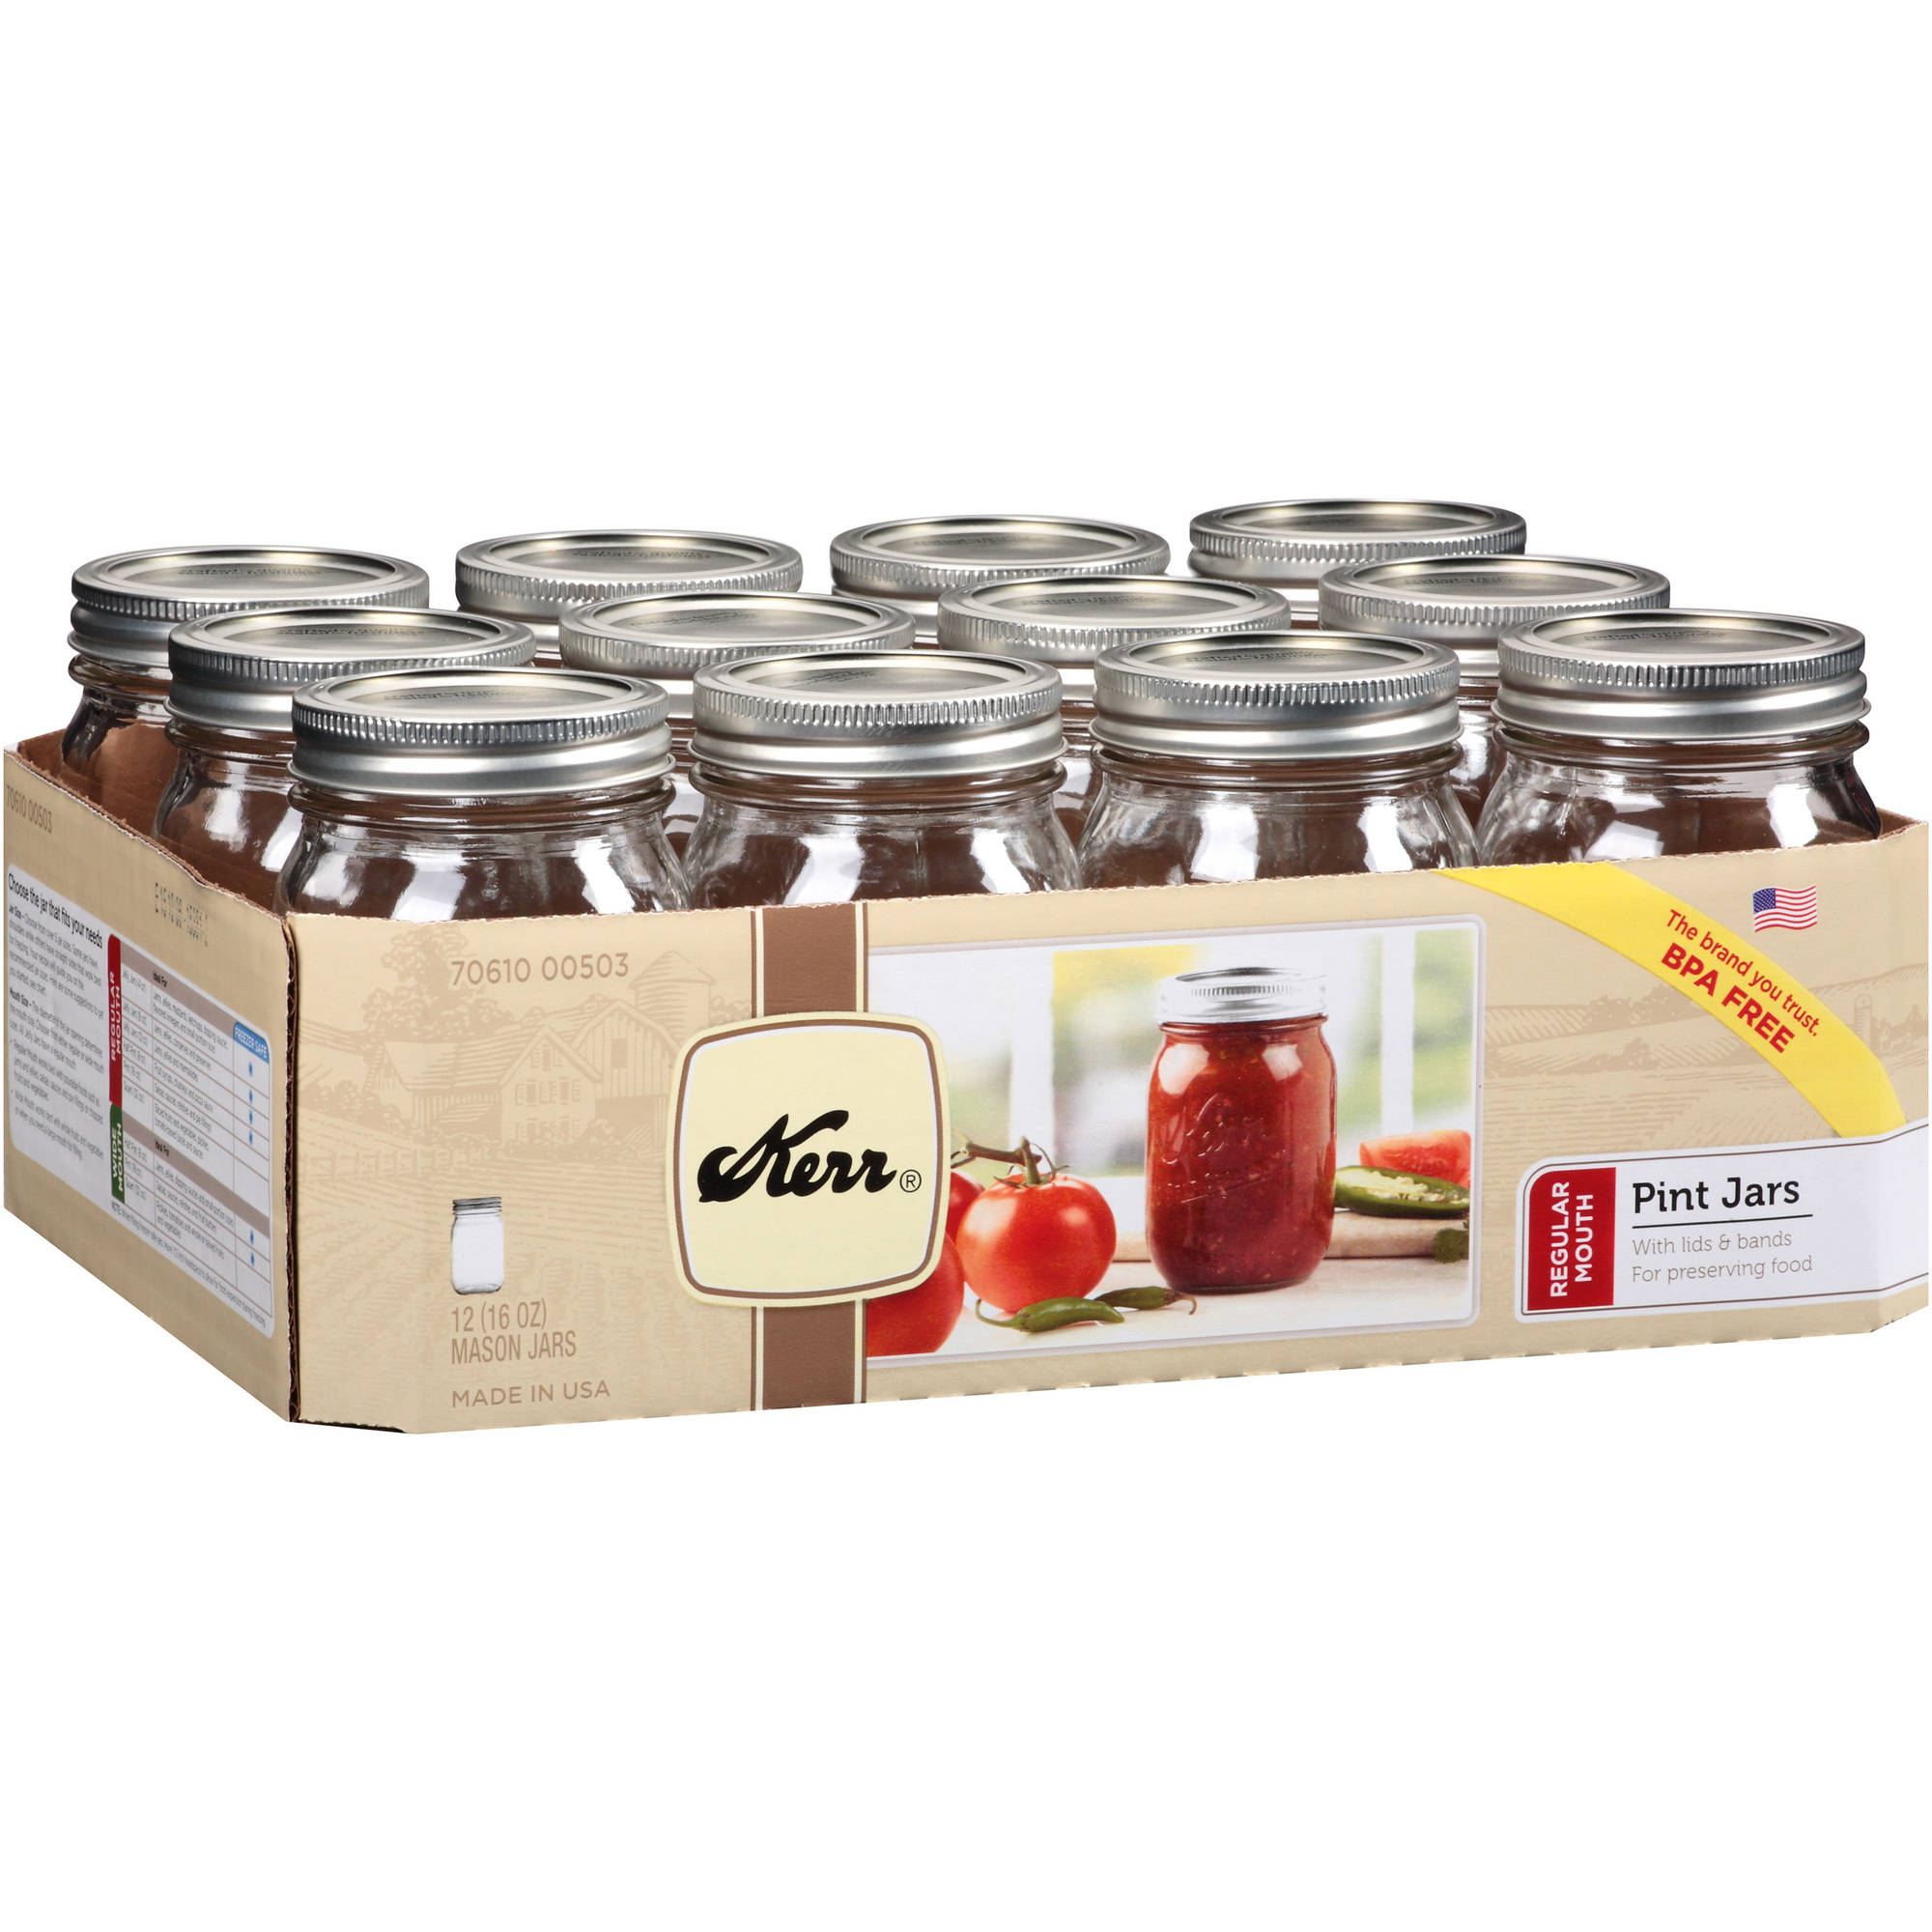 Kerr Regular Mouth Pint Jars, 12 count